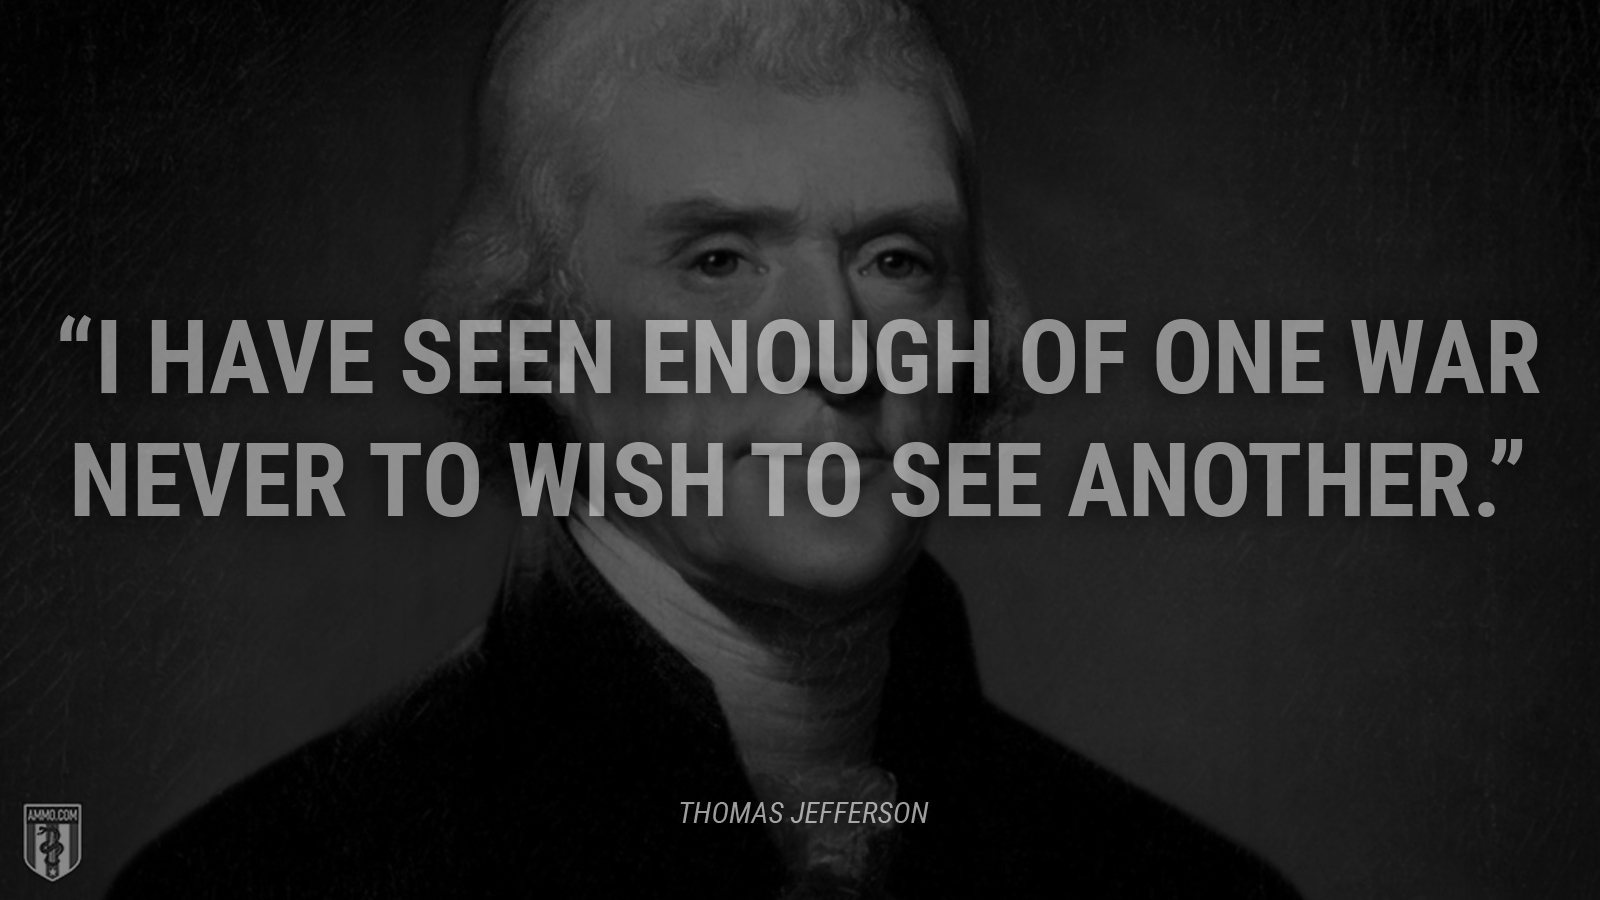 """I have seen enough of one war never to wish to see another."" - Thomas Jefferson"